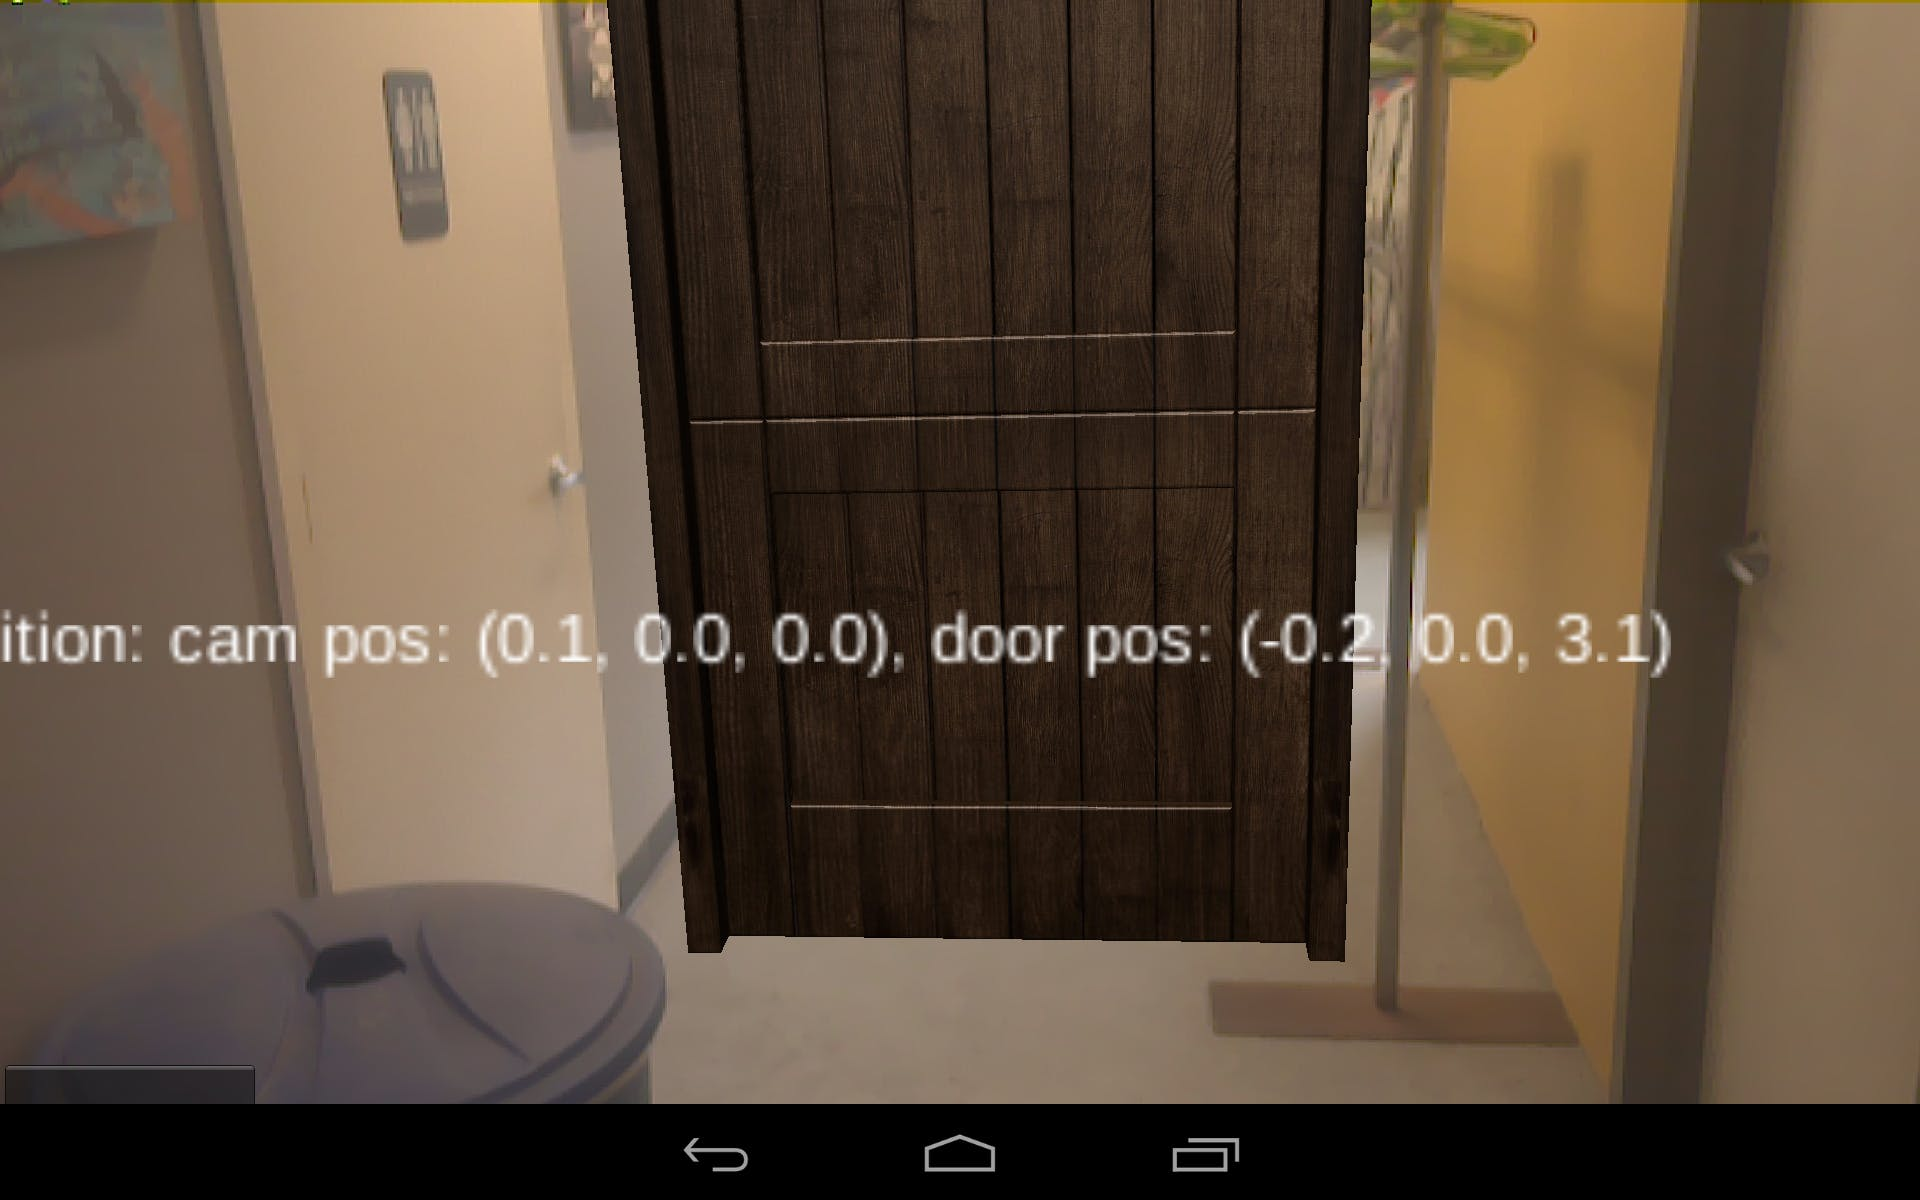 Augmented reality scene after placing door.